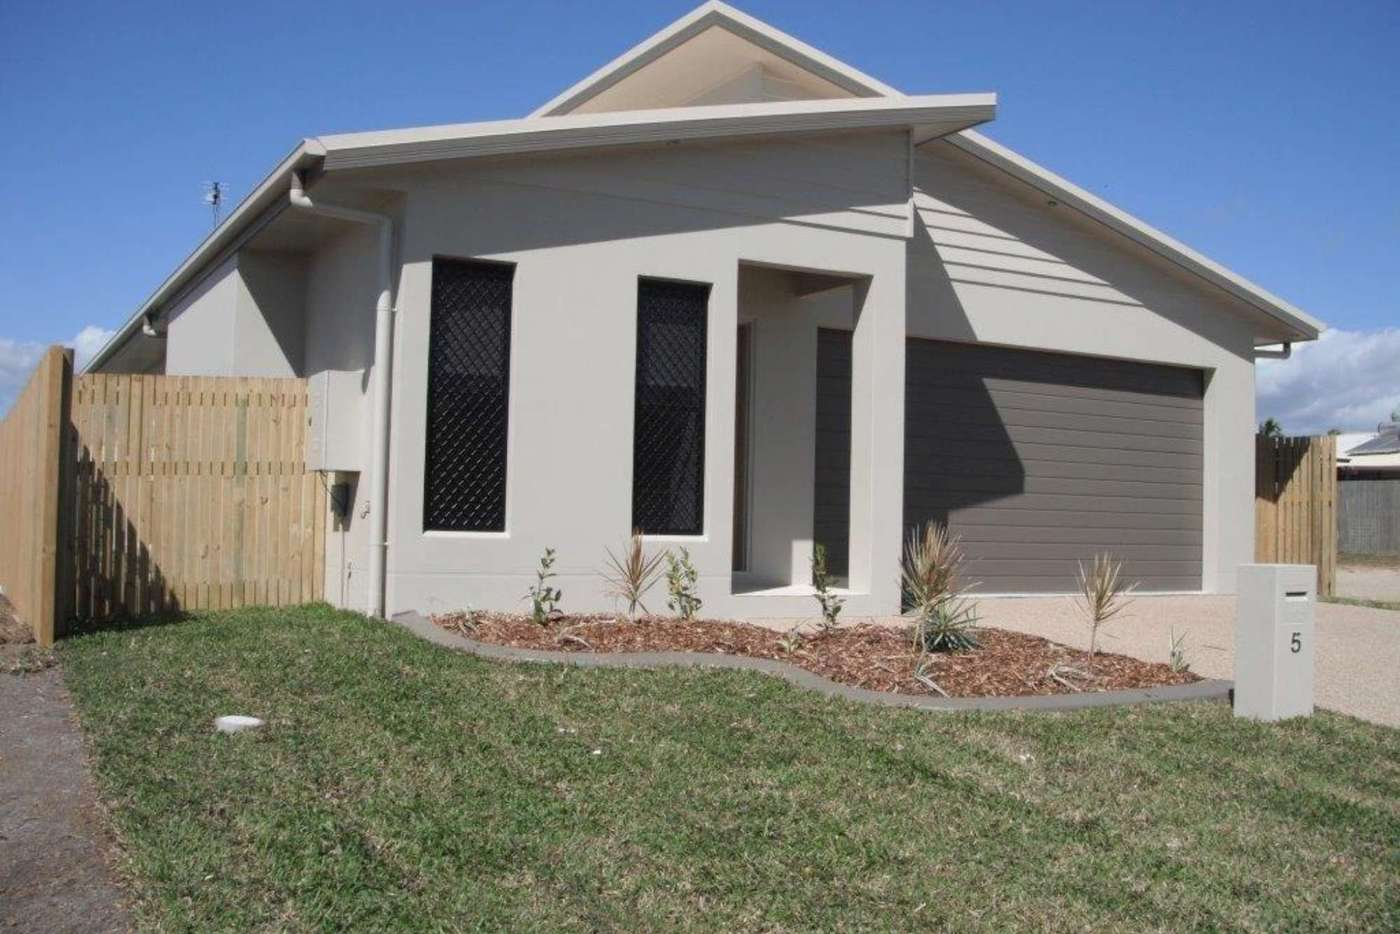 Main view of Homely house listing, 5 Goldfish Court, Burdell QLD 4818